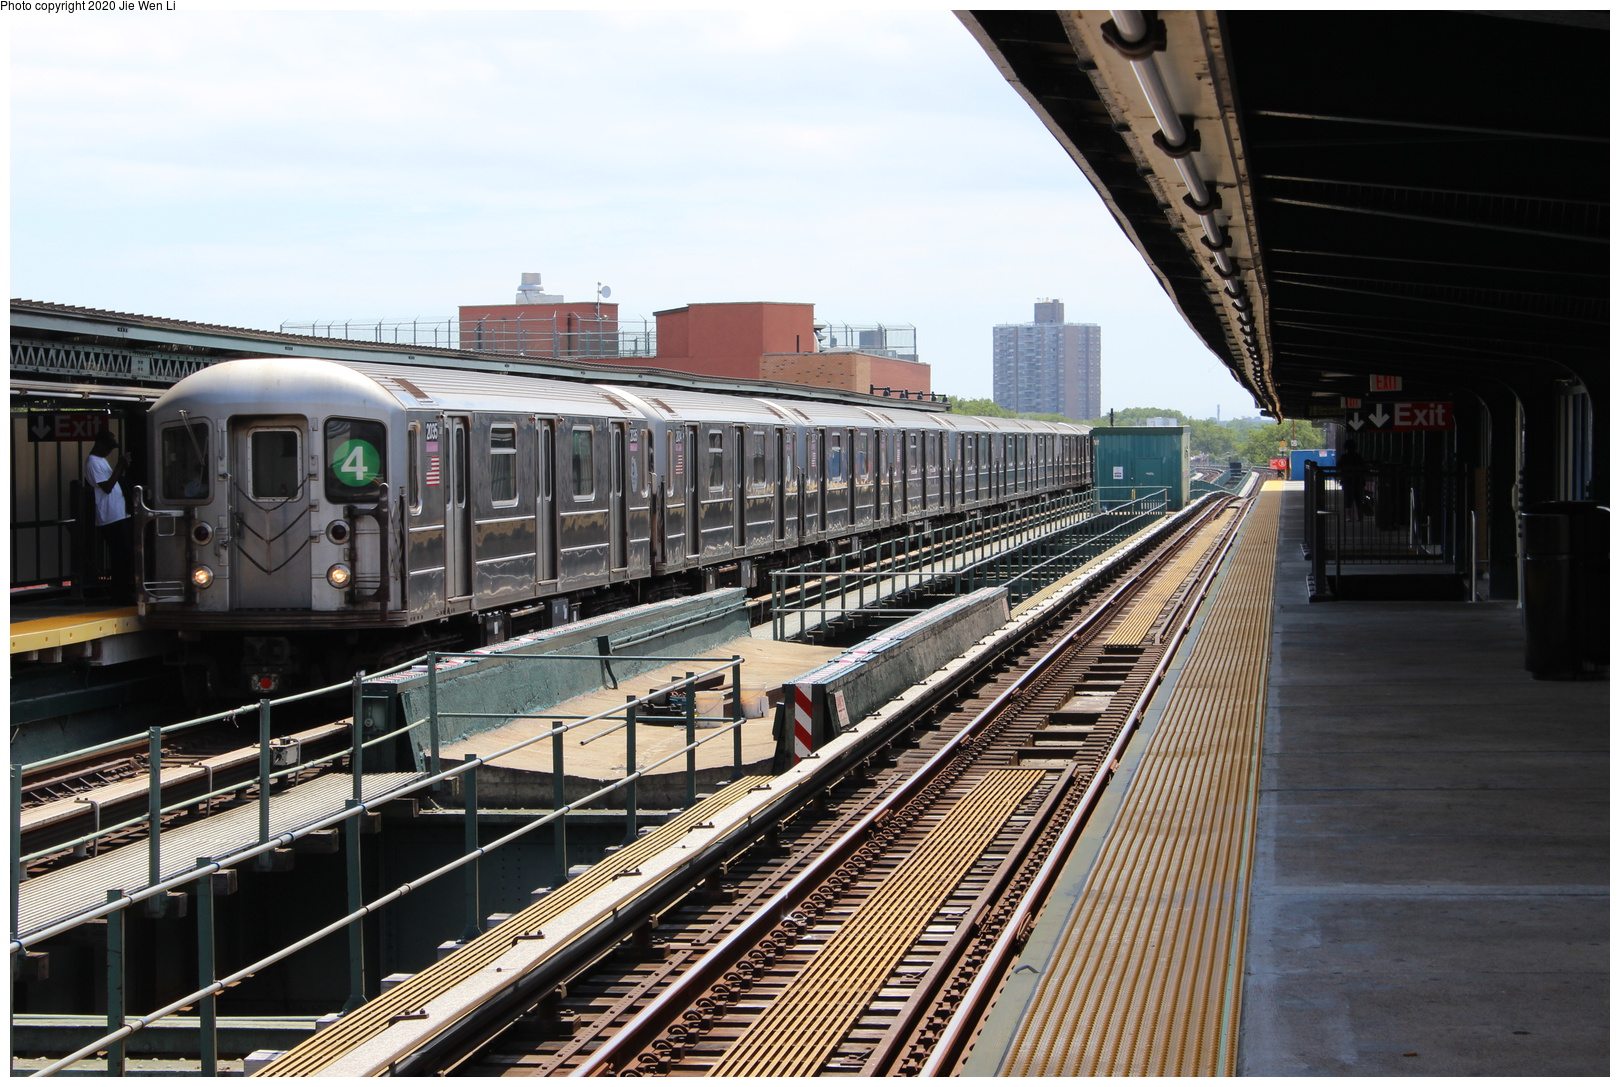 (197k, 1044x692)<br><b>Country:</b> United States<br><b>City:</b> New York<br><b>System:</b> New York City Transit<br><b>Line:</b> BMT Myrtle Avenue Line<br><b>Location:</b> Fresh Pond Road <br><b>Car:</b> BMT Multi  <br><b>Photo by:</b> Joel Shanus<br><b>Viewed (this week/total):</b> 3 / 1938